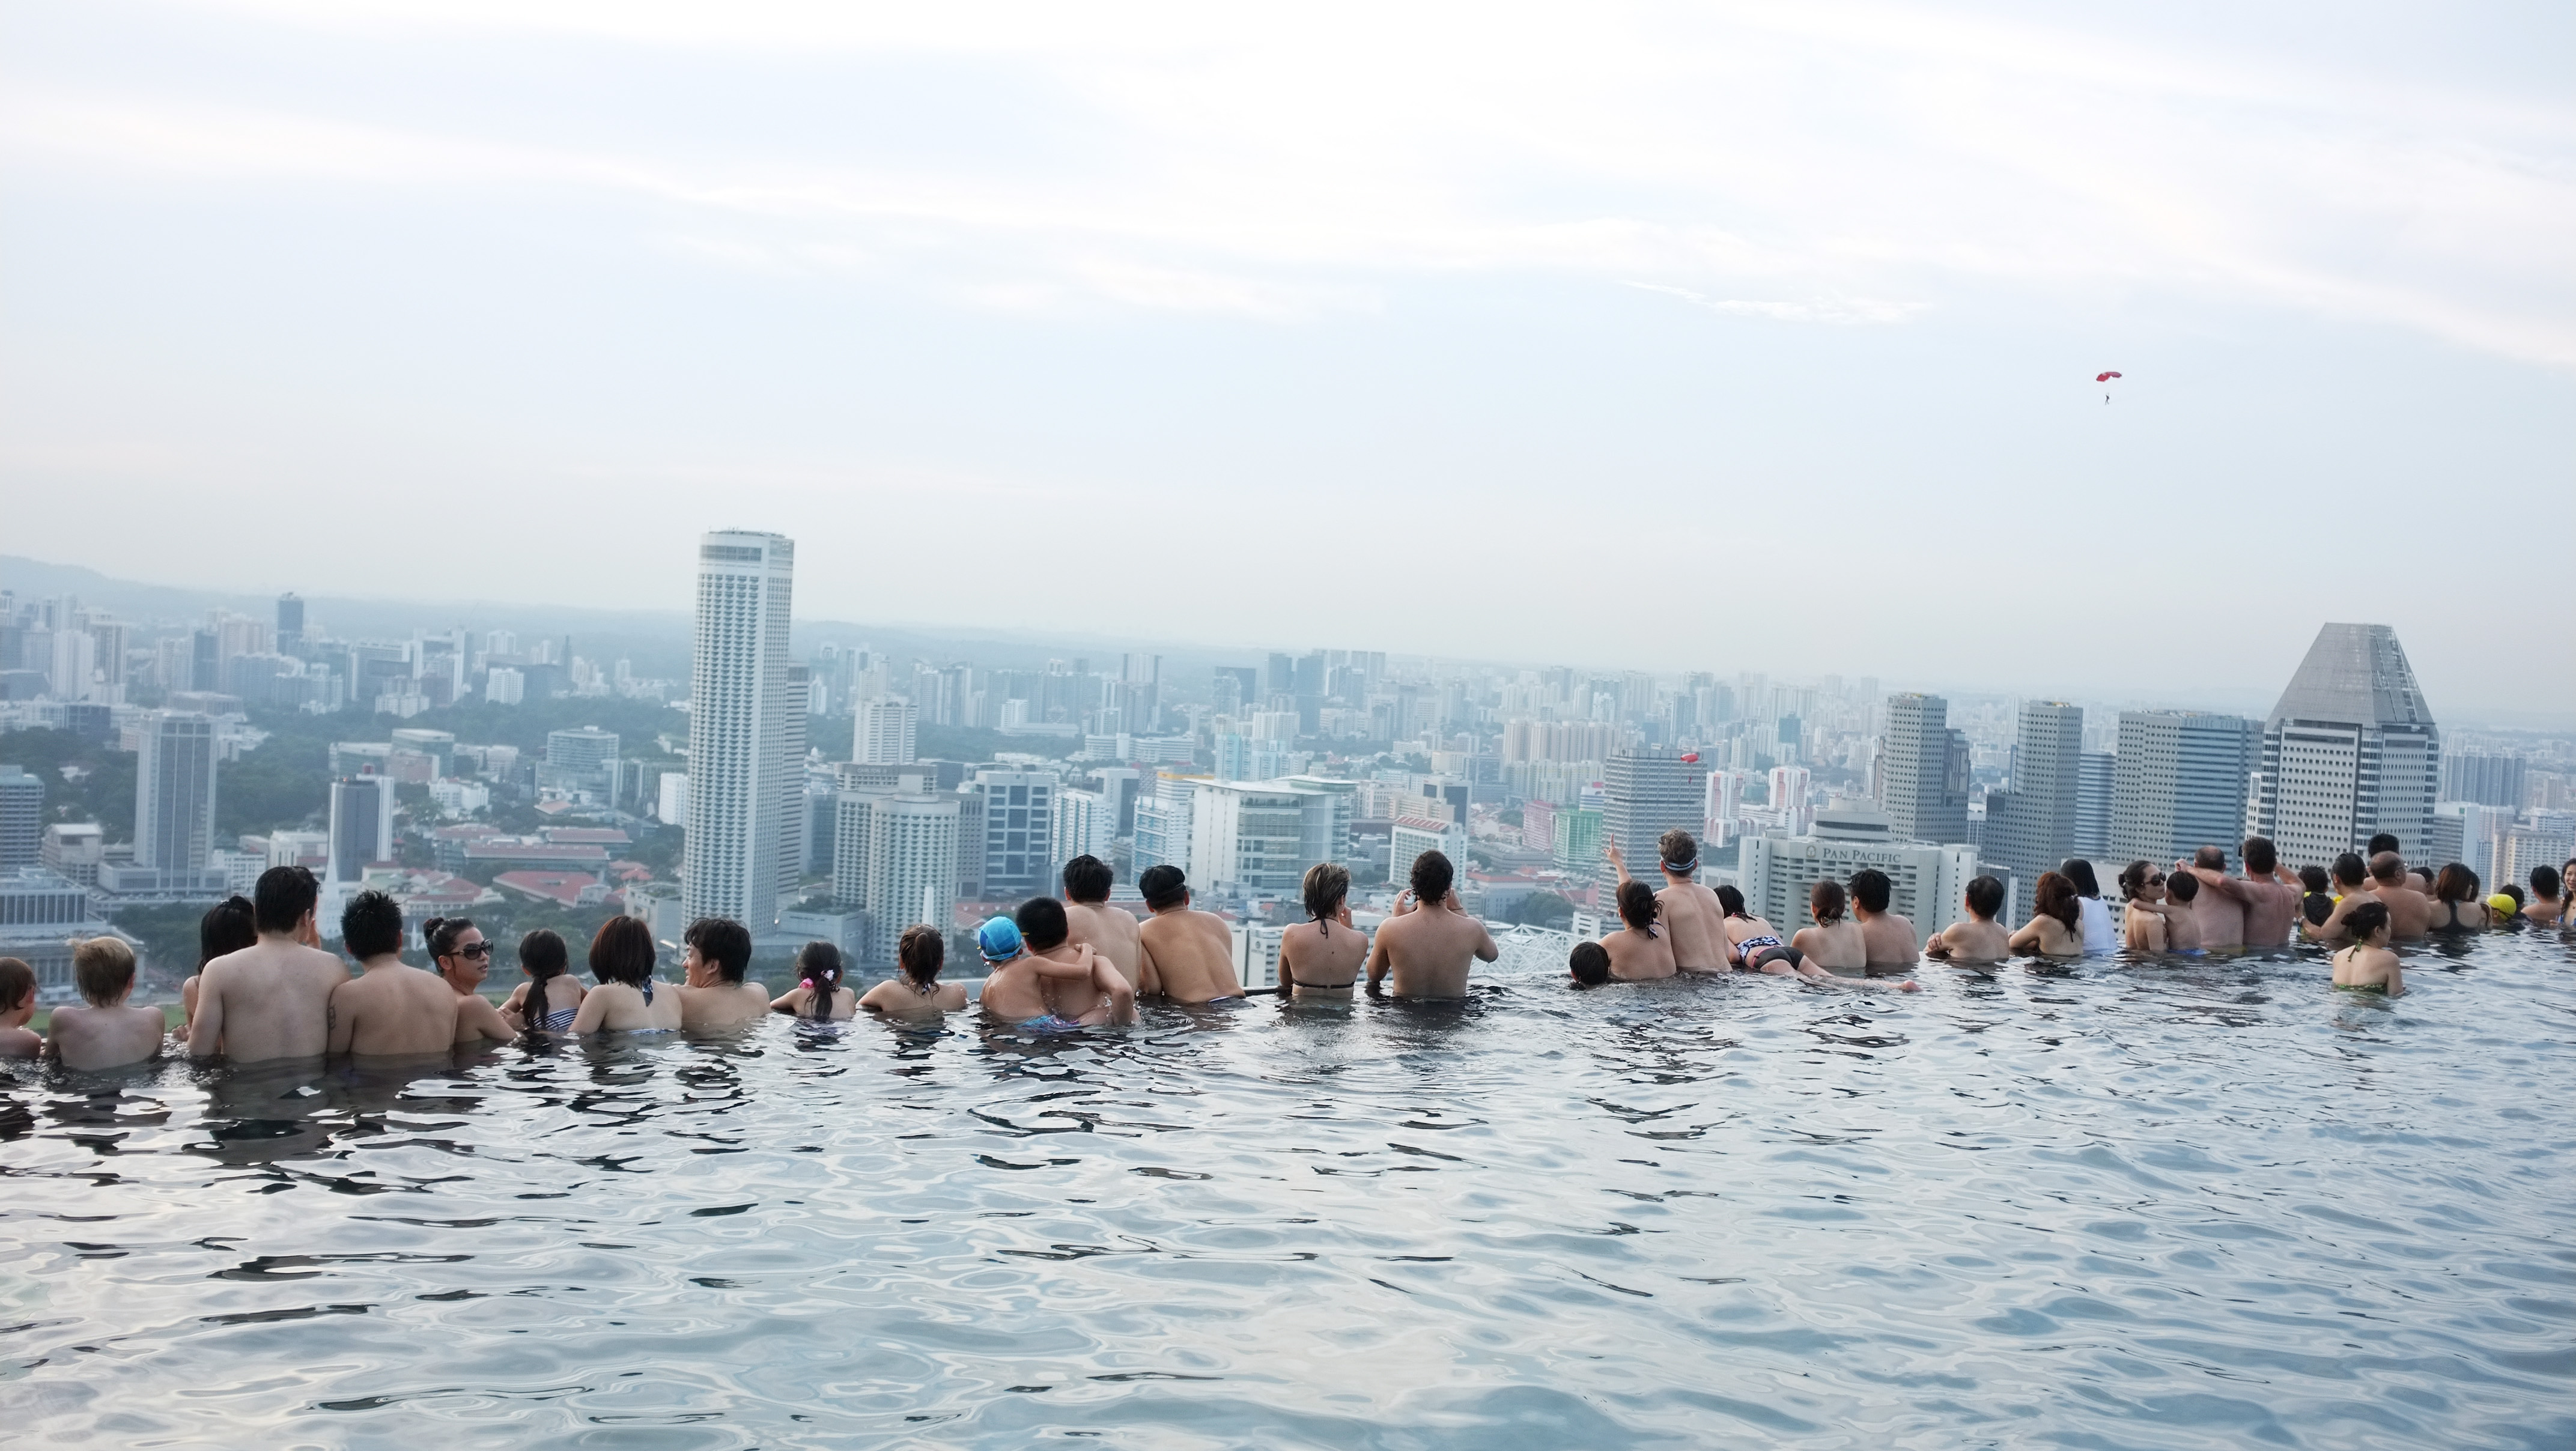 the infinity pool @ mbs | today i asked god for the clouds